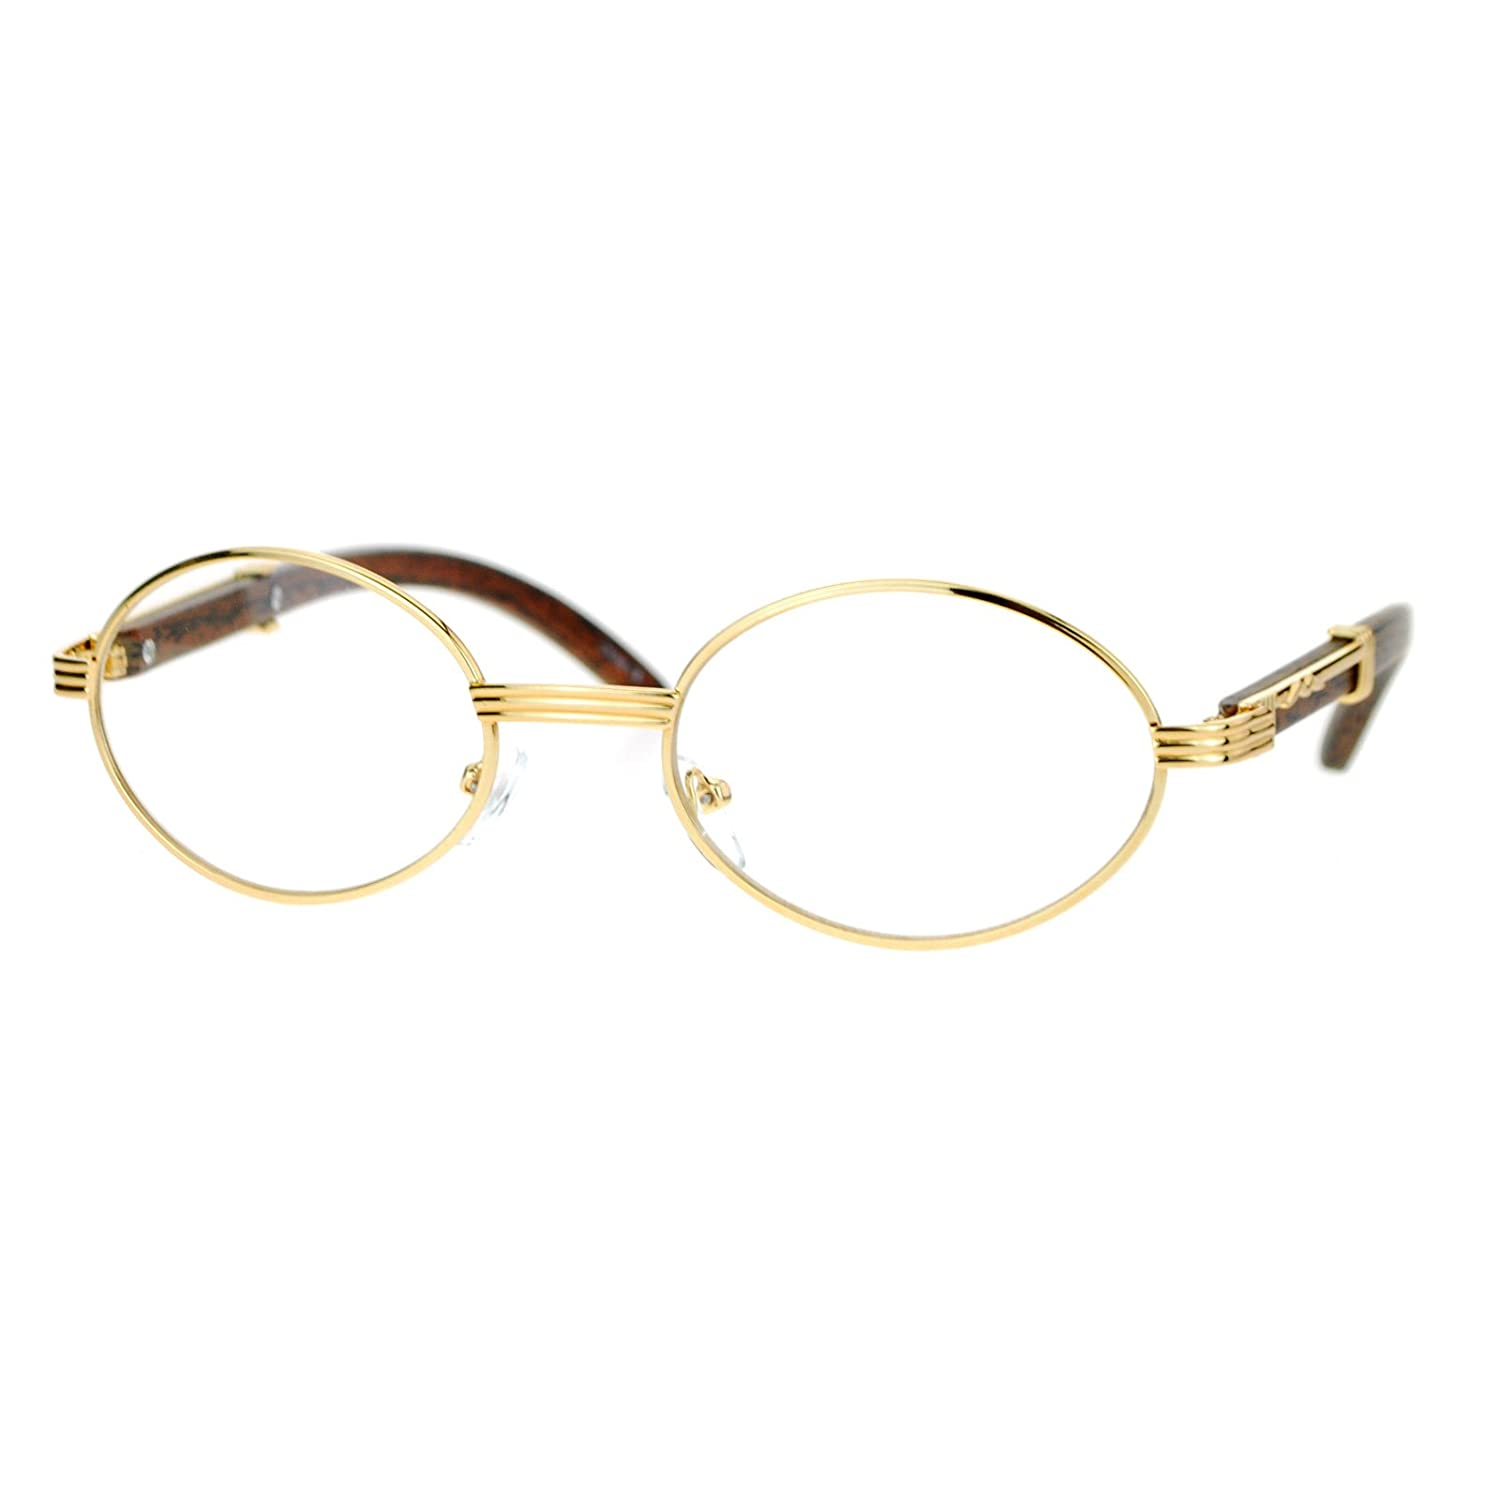 d5ff07315a6e Amazon.com  Clear Lens Eyeglasses Unisex Vintage Fashion Oval Frame Glasses  Yellow Gold  Clothing